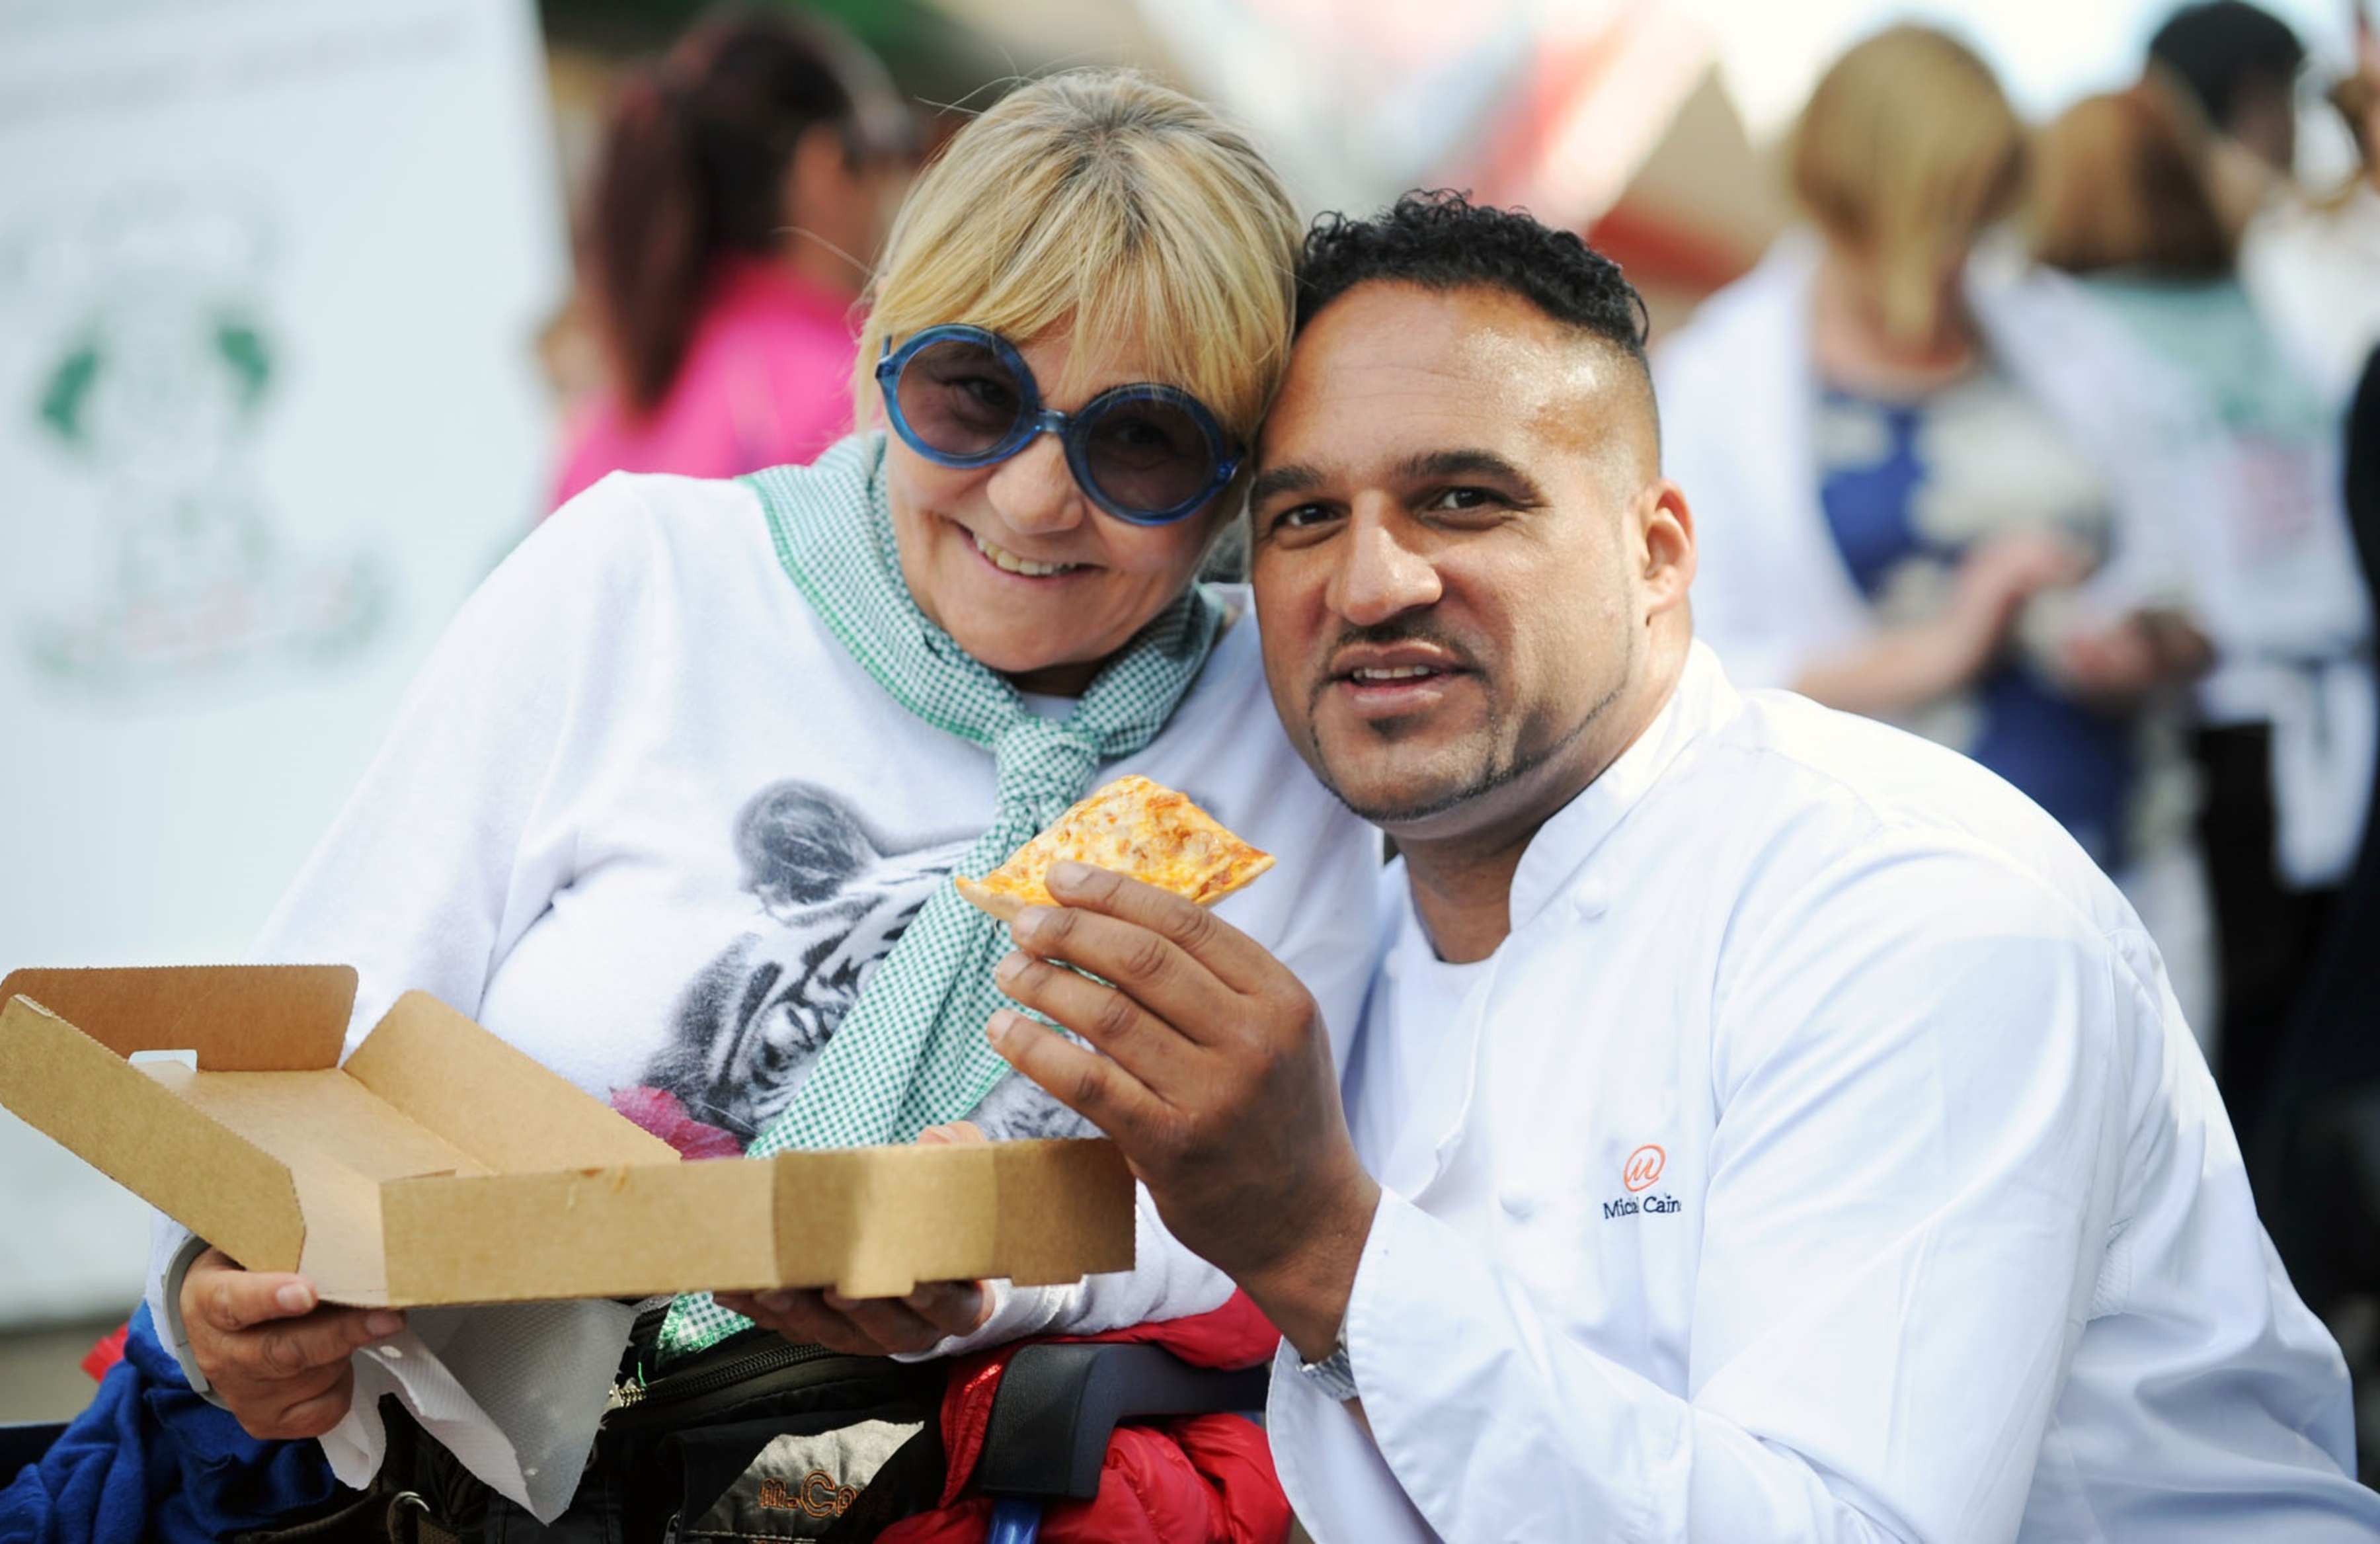 Franca with Michael Caines 2015